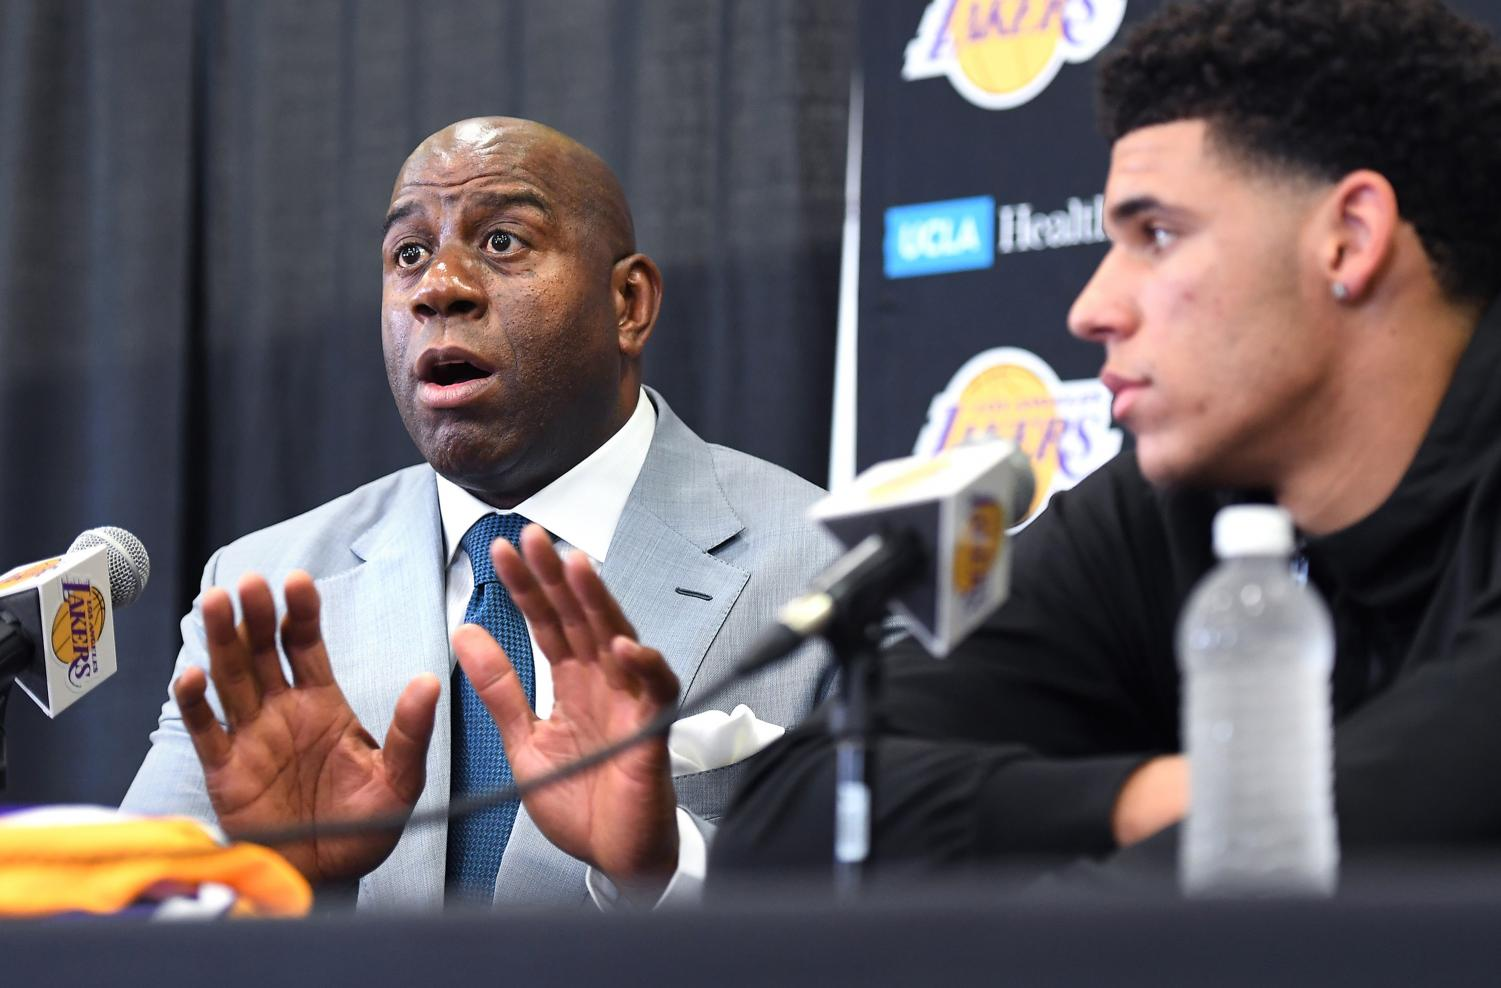 Los Angeles Lakers President of Basketball Operations Magic Johnson speaks during a news conference introducing the Lakers' first-round draft pick, second overall, Lonzo Ball at the team's training facility in El Segundo, Calif., on Friday, June 23, 2017. (Wally Skalij/Los Angeles Times/TNS)